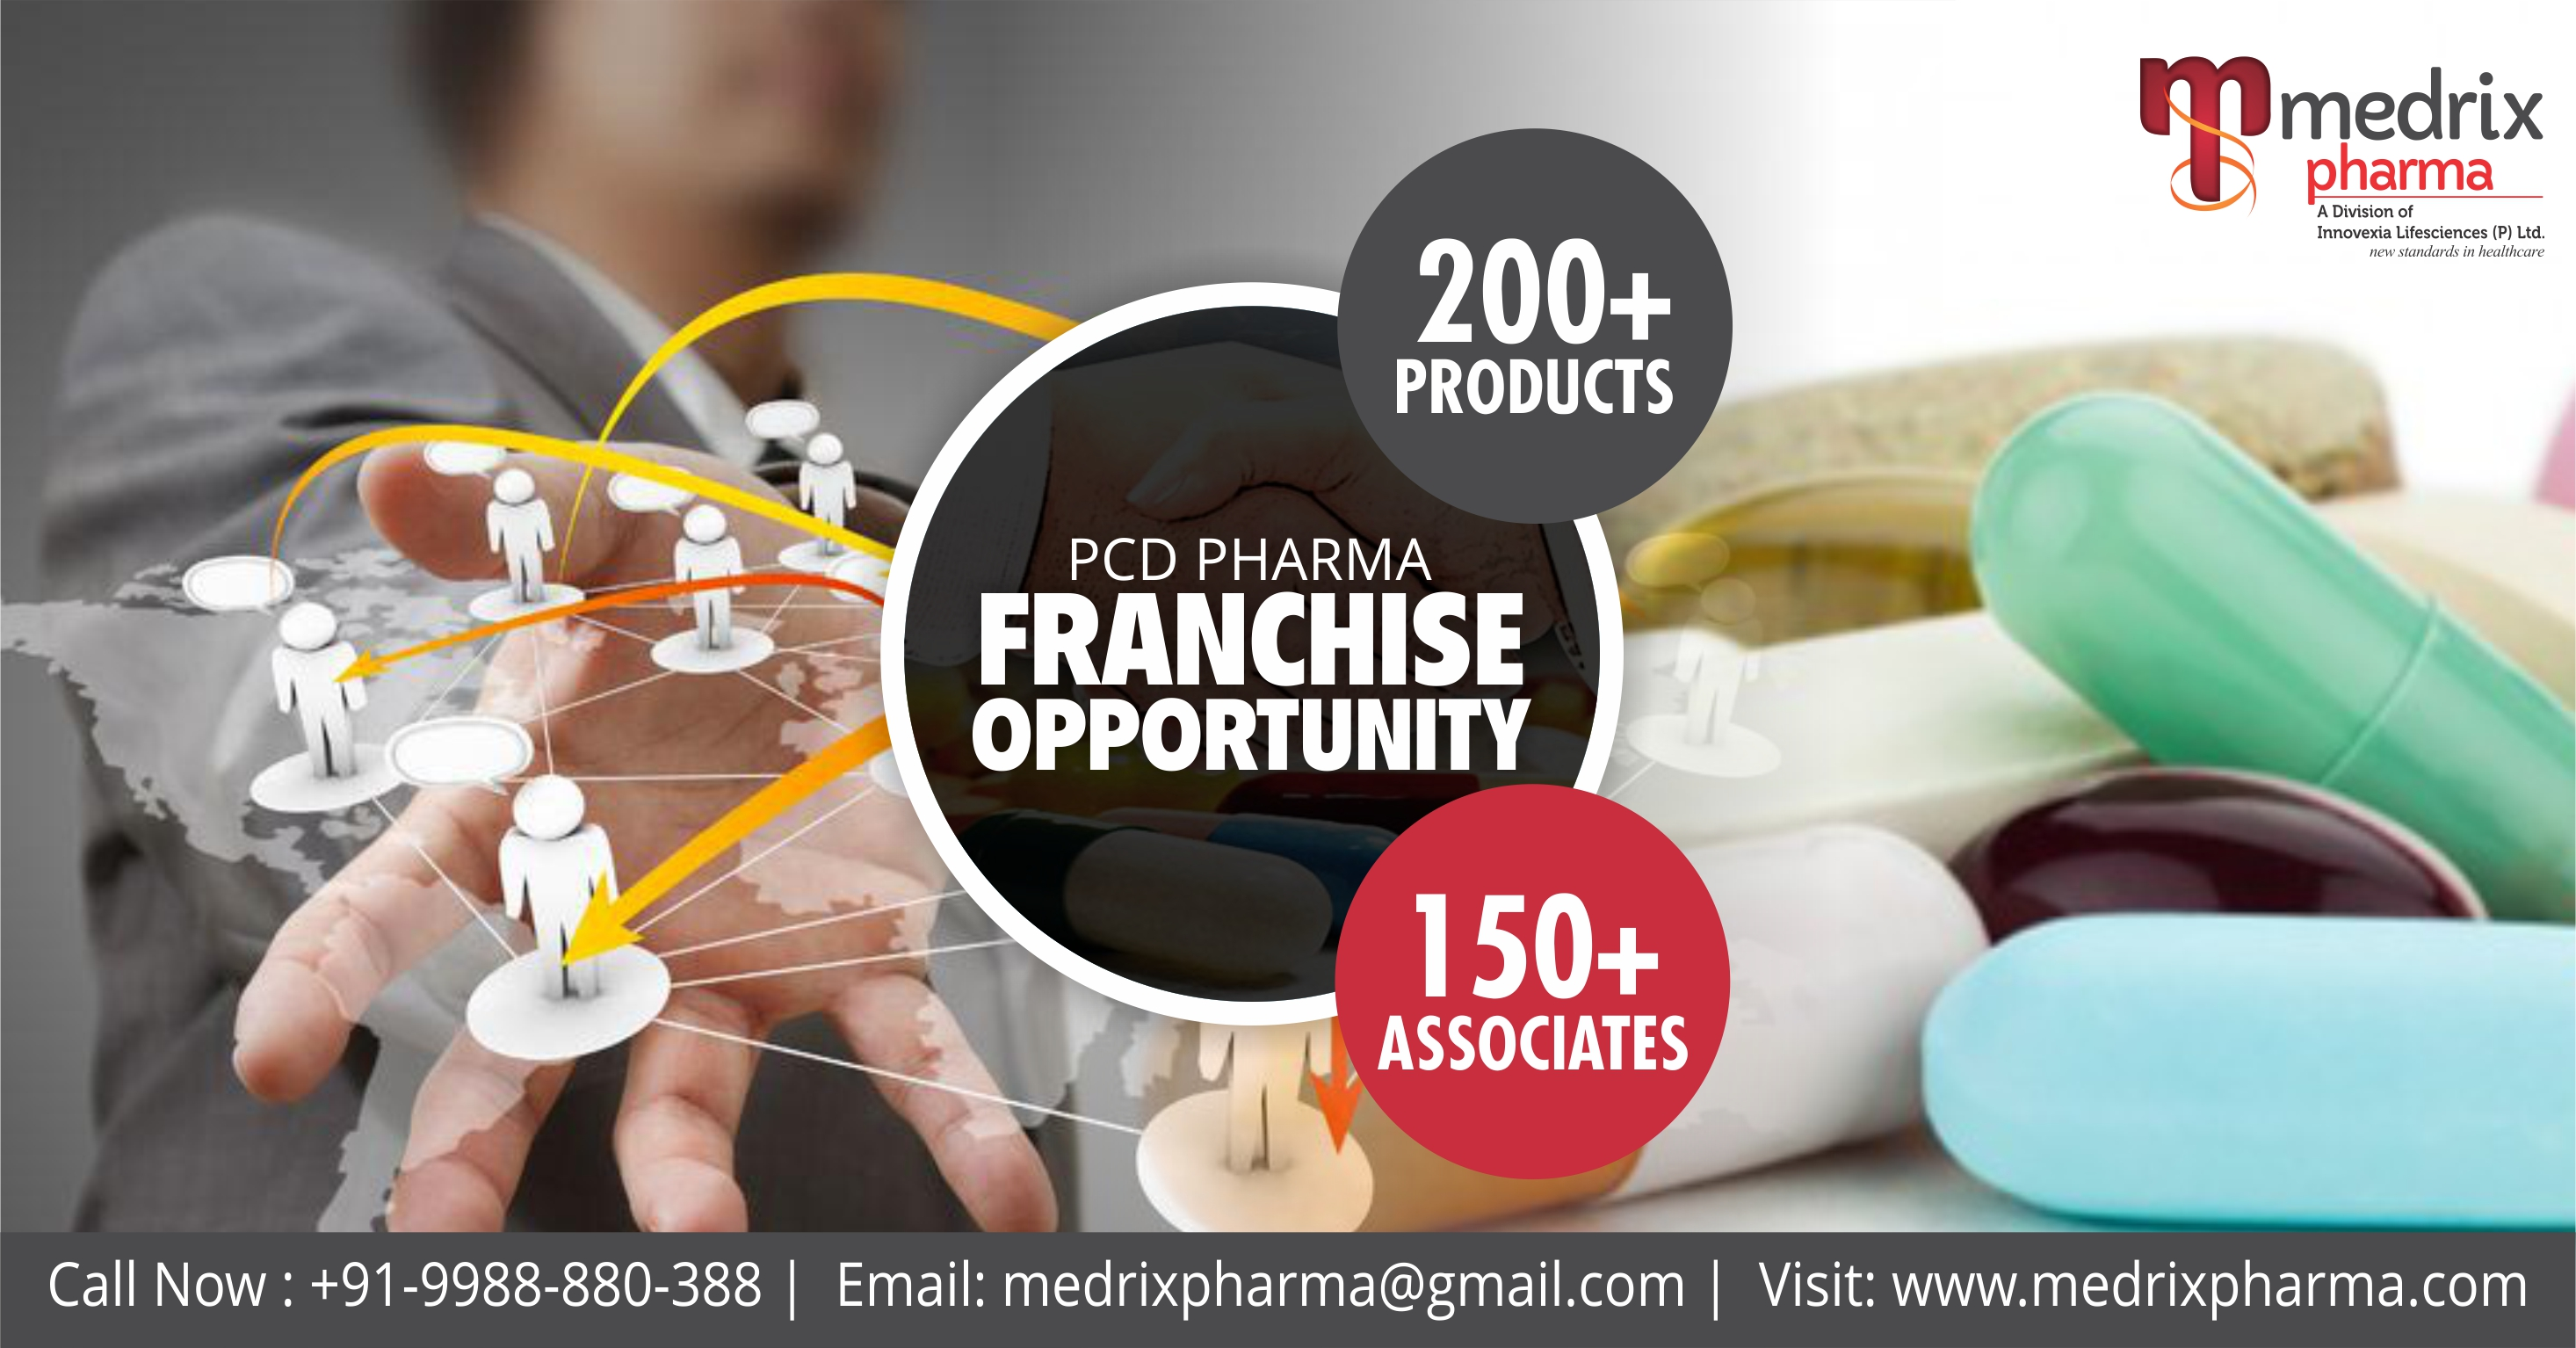 What Is The Pharma Franchise Distribution And Marketing Agreement